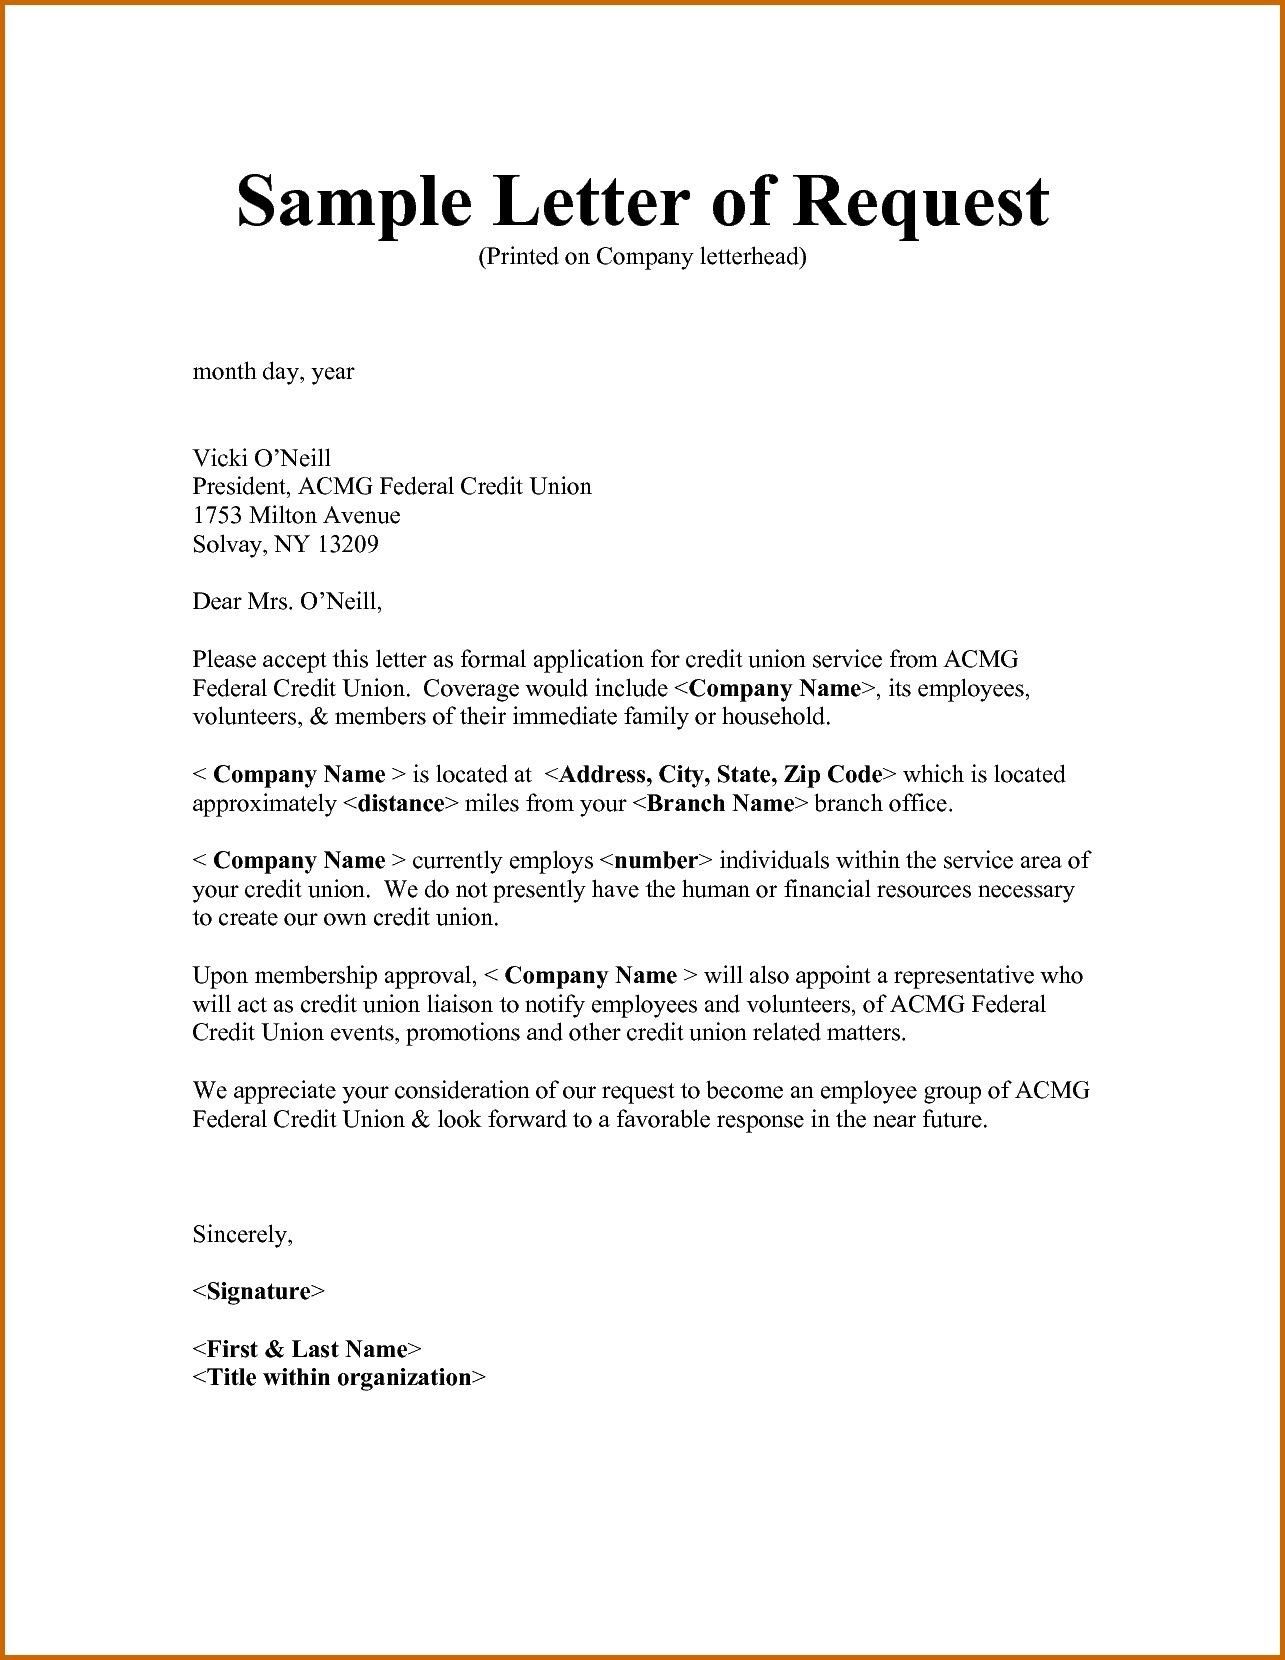 Probation Termination Letter Template - Sample Termination Letter for Job Elimination Save Example Letter